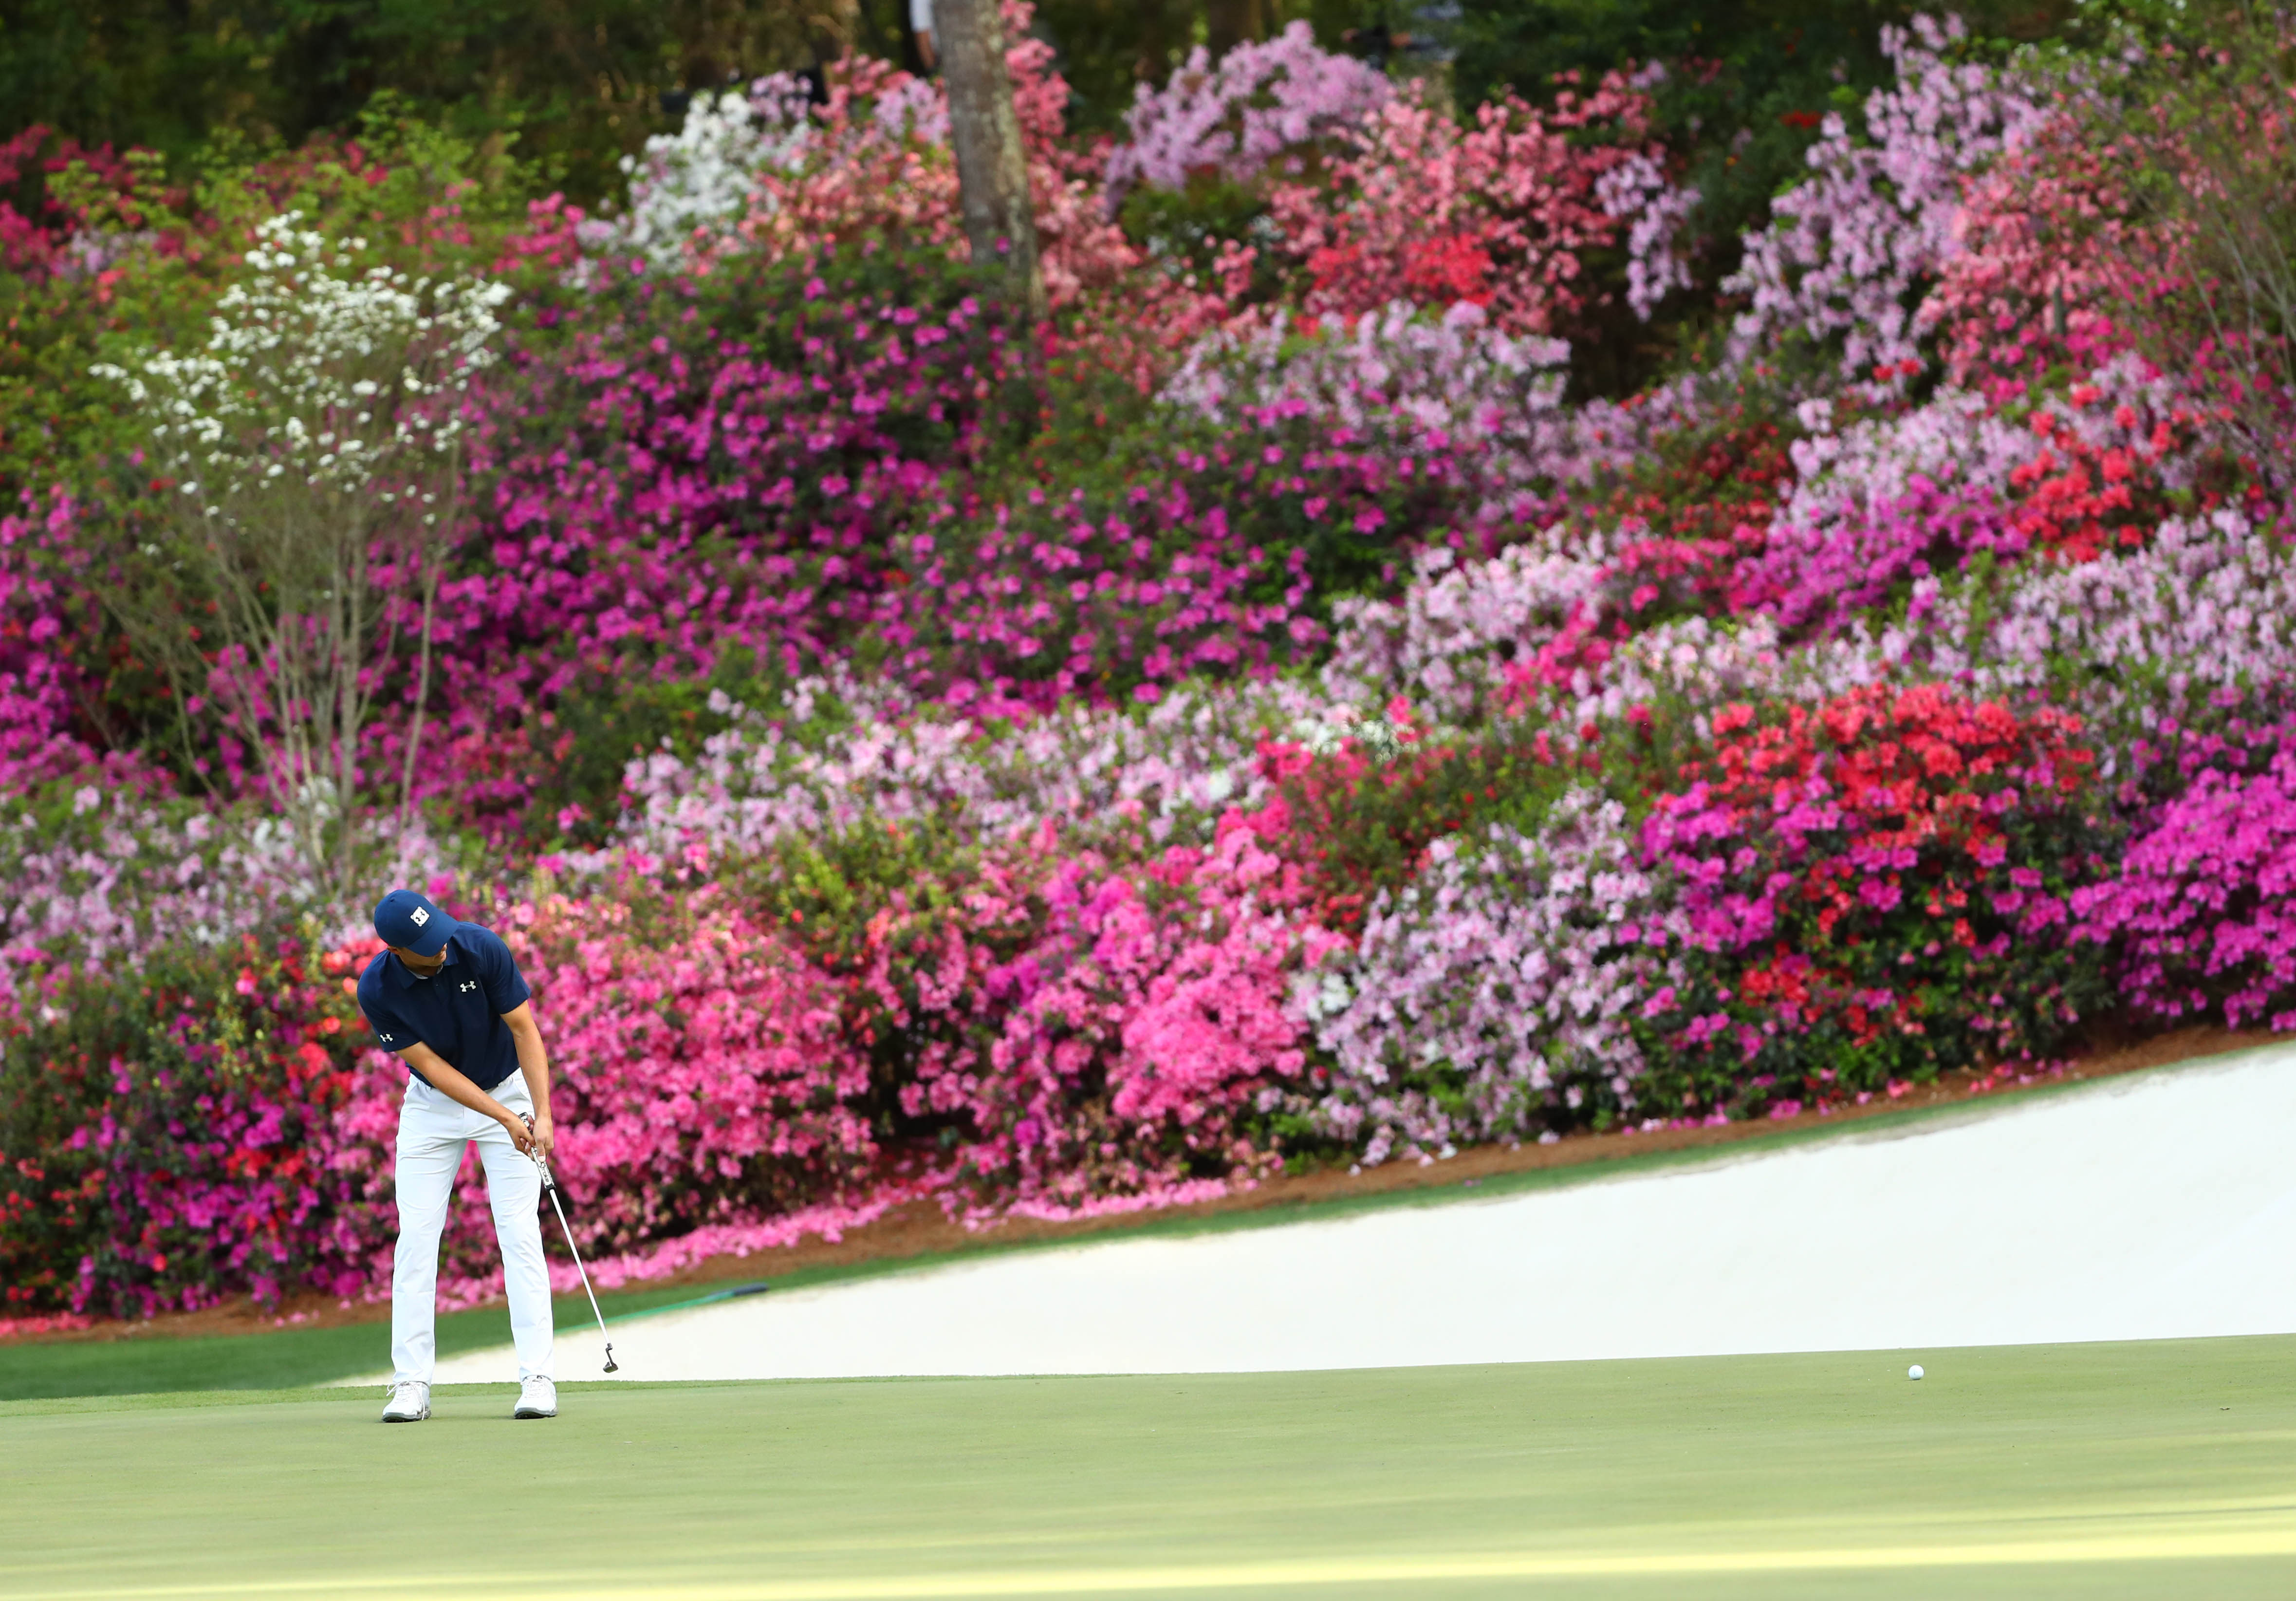 Apr 5, 2018; Augusta, GA, USA; Jordan Spieth putts on the 13th green during the first round of the Masters golf tournament at Augusta National Golf Club. Mandatory Credit: Rob Schumacher-USA TODAY Sports